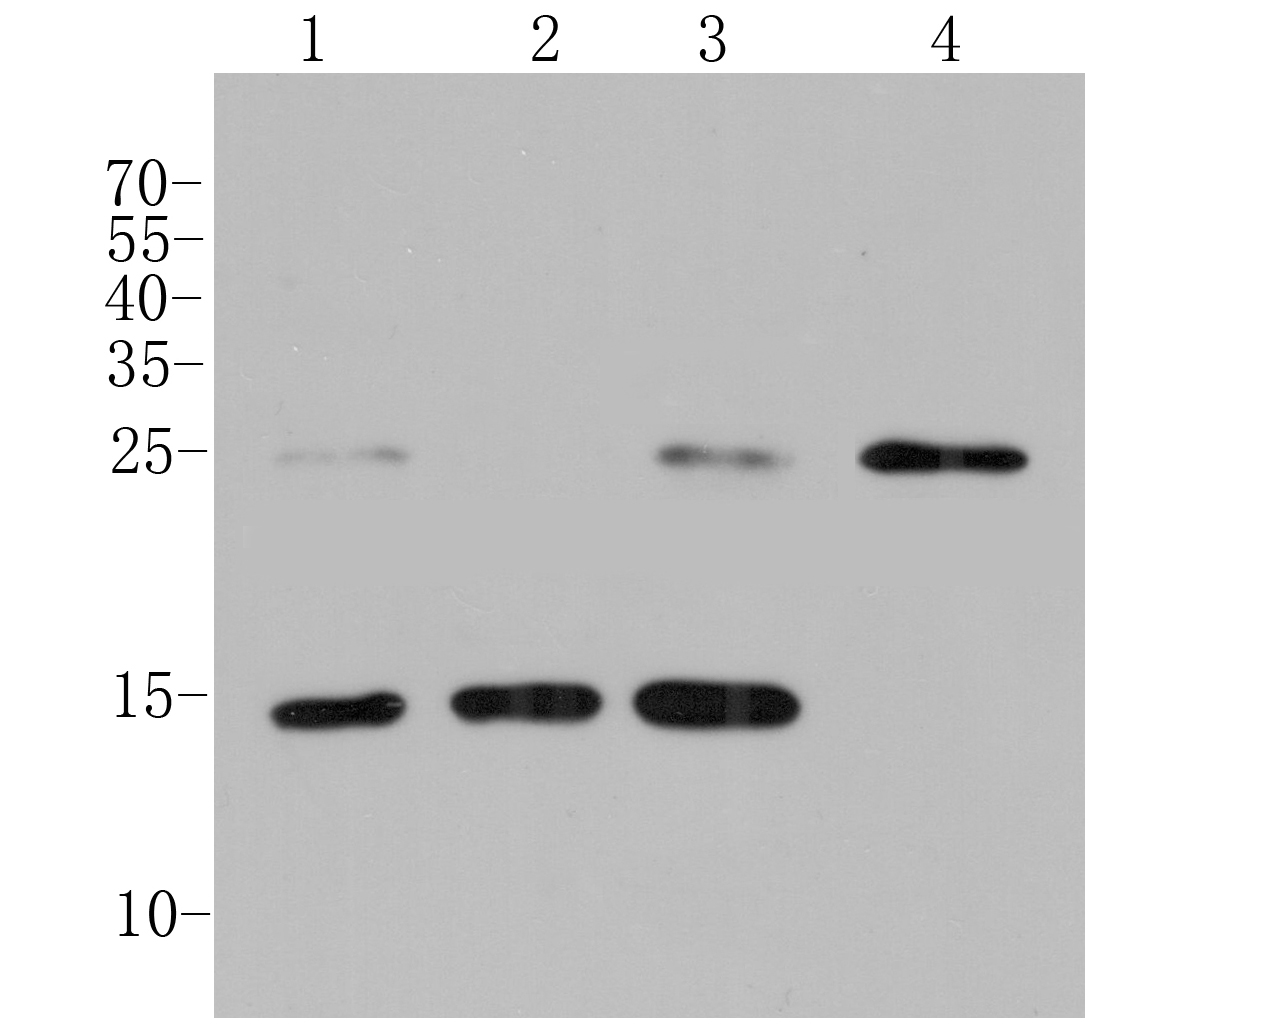 Western blot analysis of MGST1 on different lysates. Proteins were transferred to a PVDF membrane and blocked with 5% BSA in PBS for 1 hour at room temperature. The primary antibody (ER1901-62, 1/1000) was used in 5% BSA at room temperature for 2 hours. Goat Anti-Rabbit IgG - HRP Secondary Antibody (HA1001) at 1:5,000 dilution was used for 1 hour at room temperature.<br />  Positive control: <br />  Lane 1: Siha cell lysate<br />  Lane 2: HepG2 cell lysate<br />  Lane 3: A549 cell lysate<br />  Lane 4: Mouse stomach tissue lysate